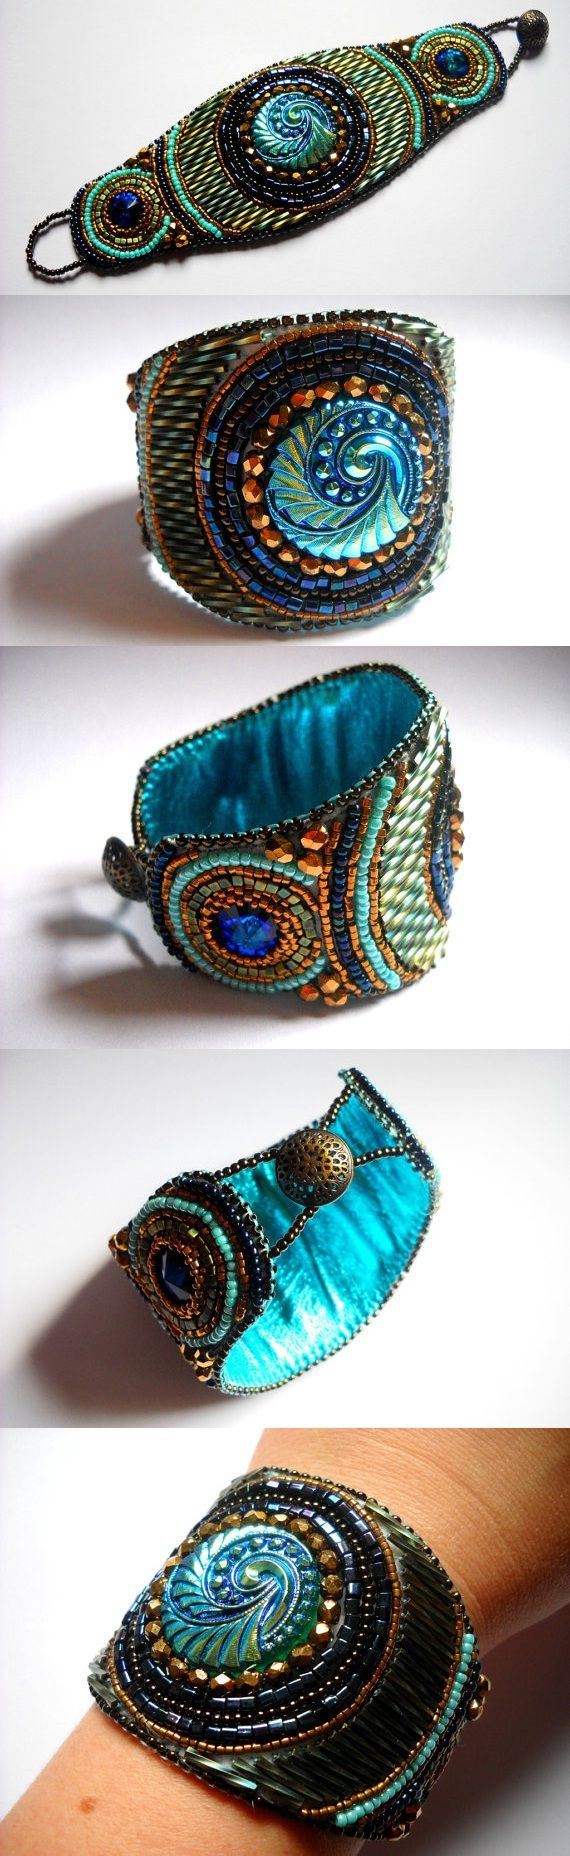 Bead embroidery bracelet cuff turquoise teal blue